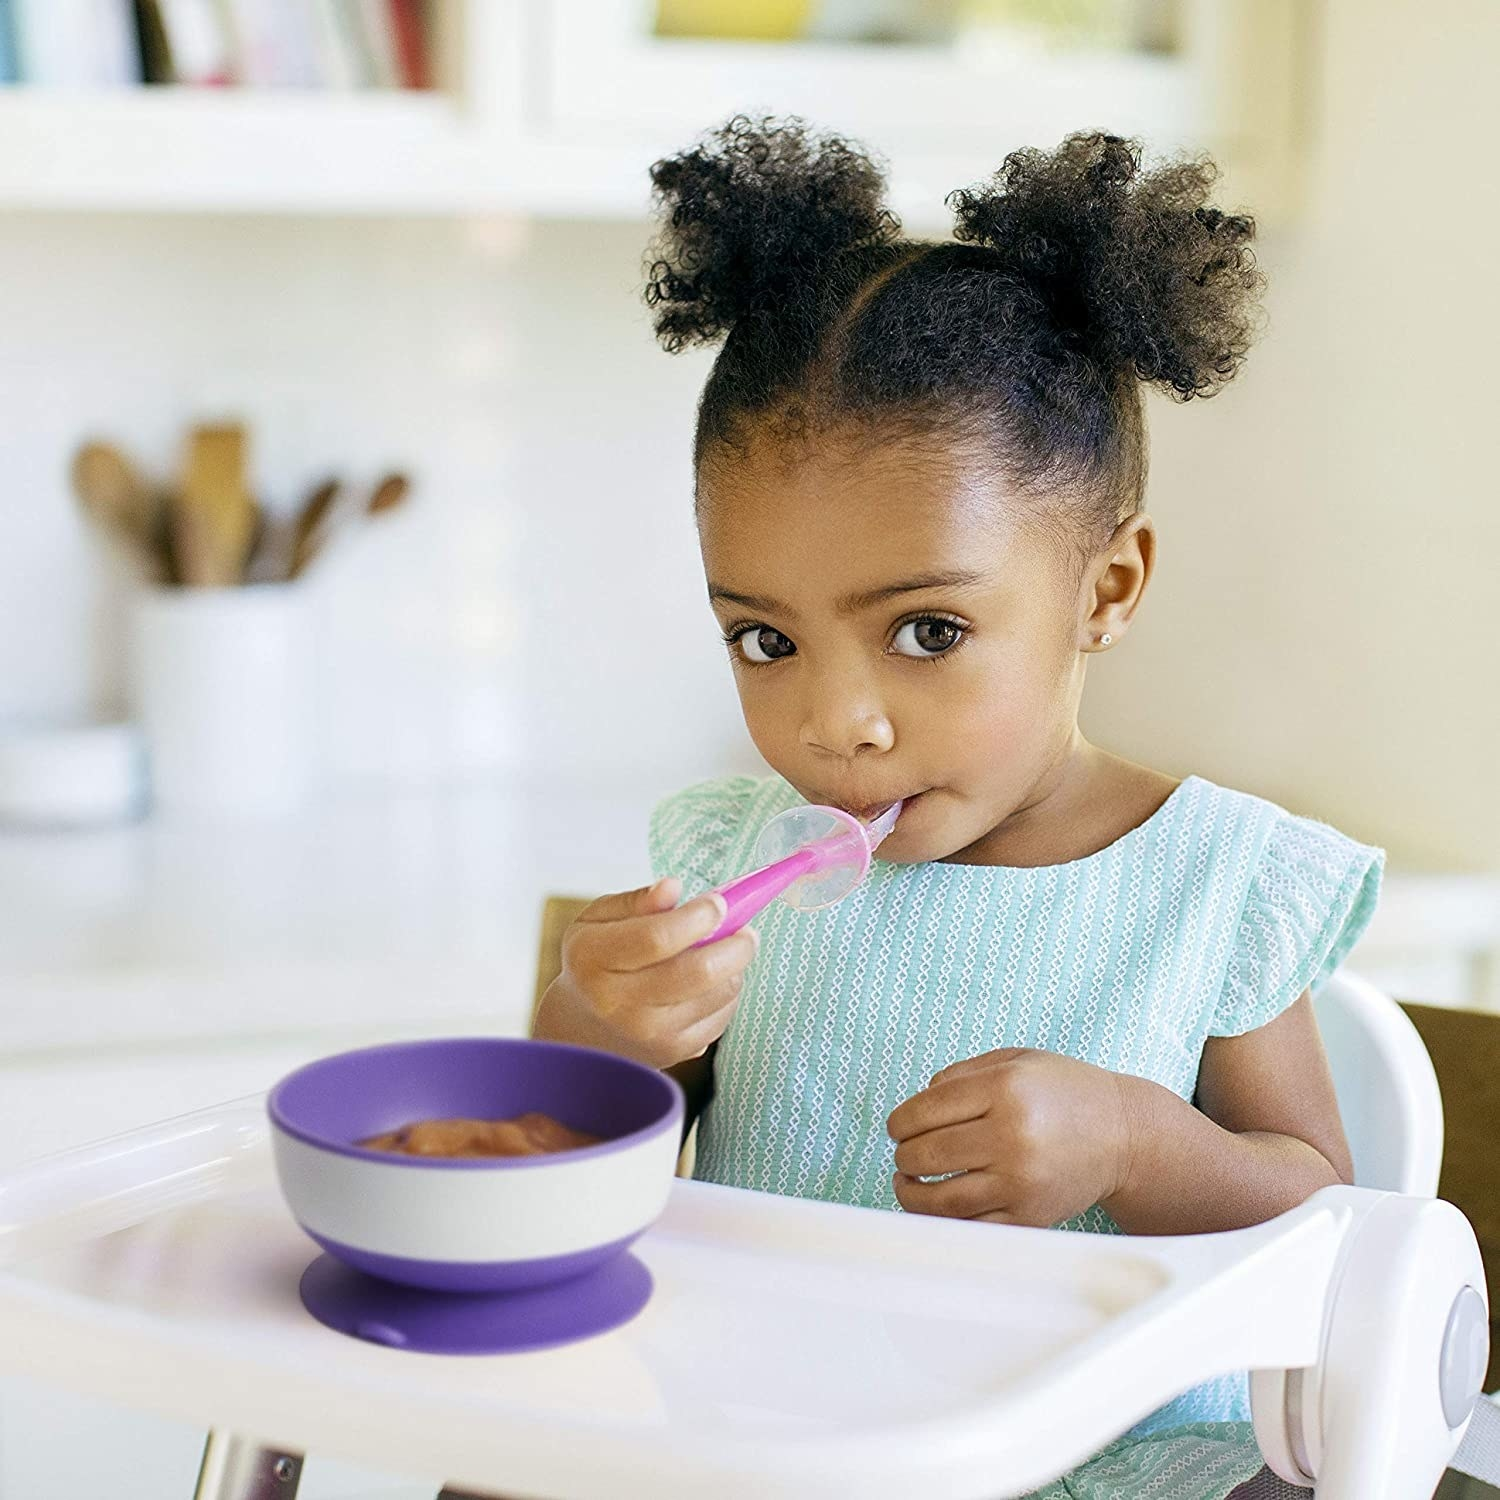 A cute kid eating from the bowl that's suction-cupped to their high chair tray